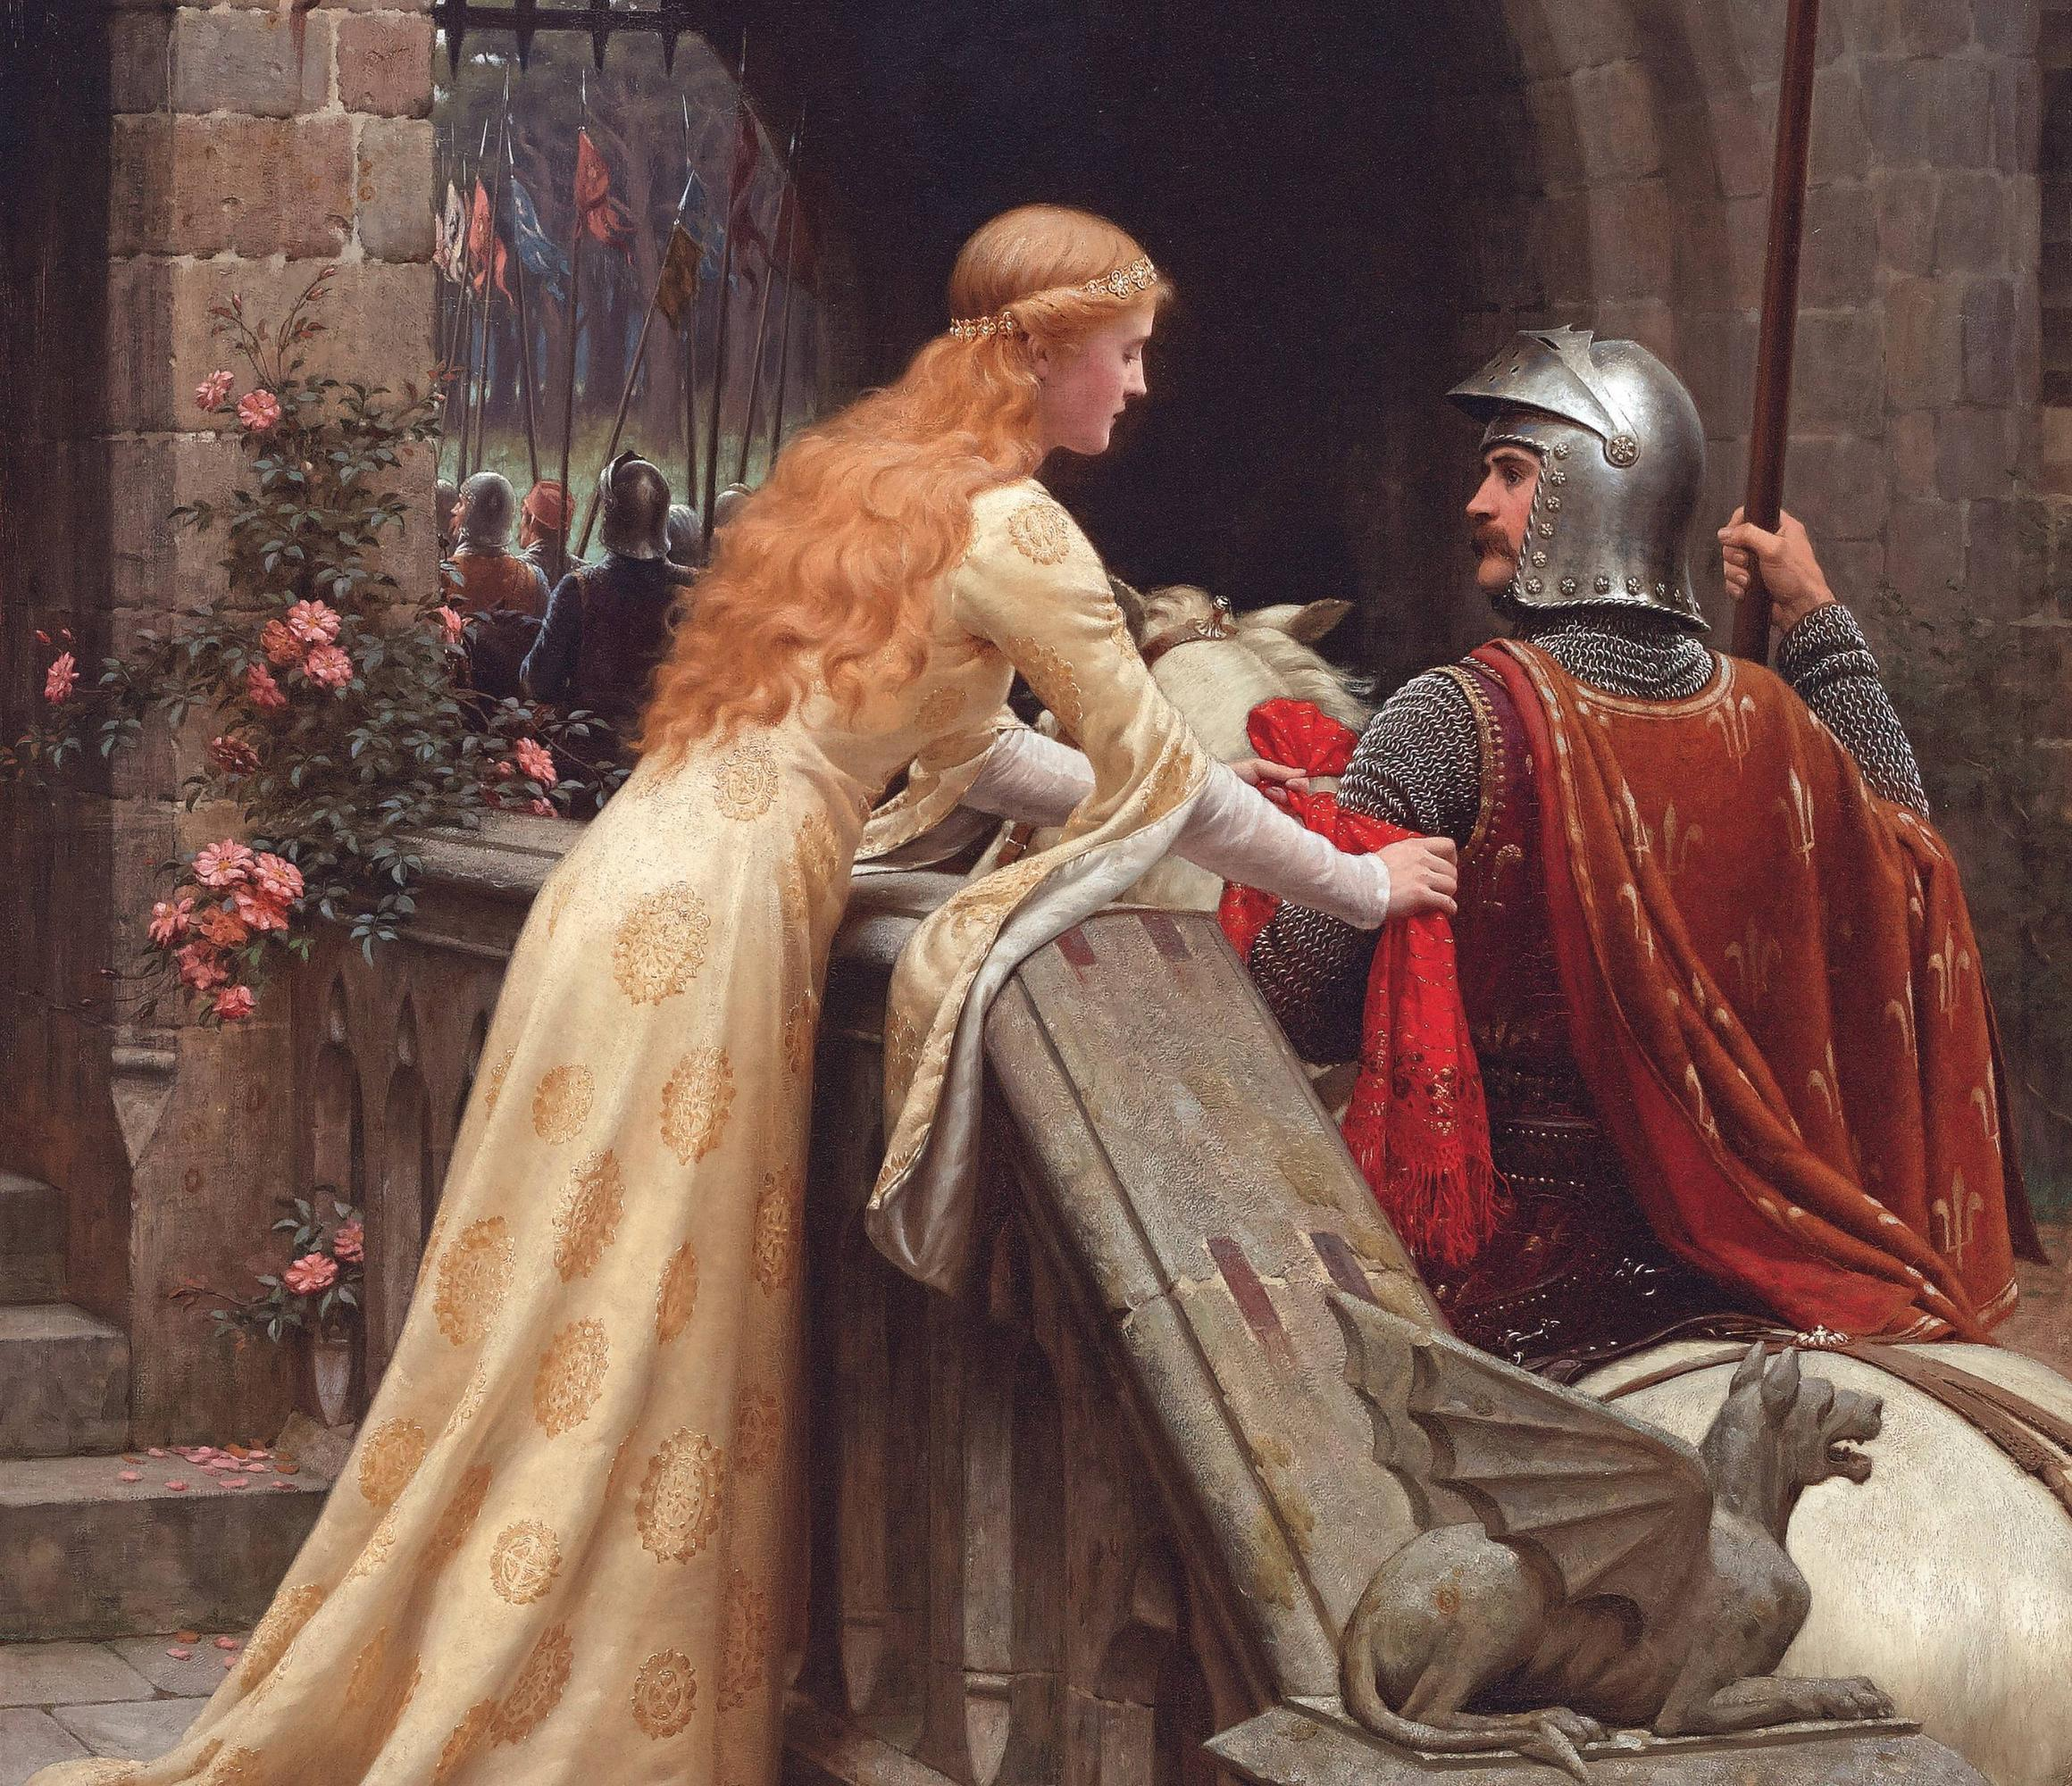 Download wallpaper virgin, romanticism, picture, Pre-Raphaelite ...